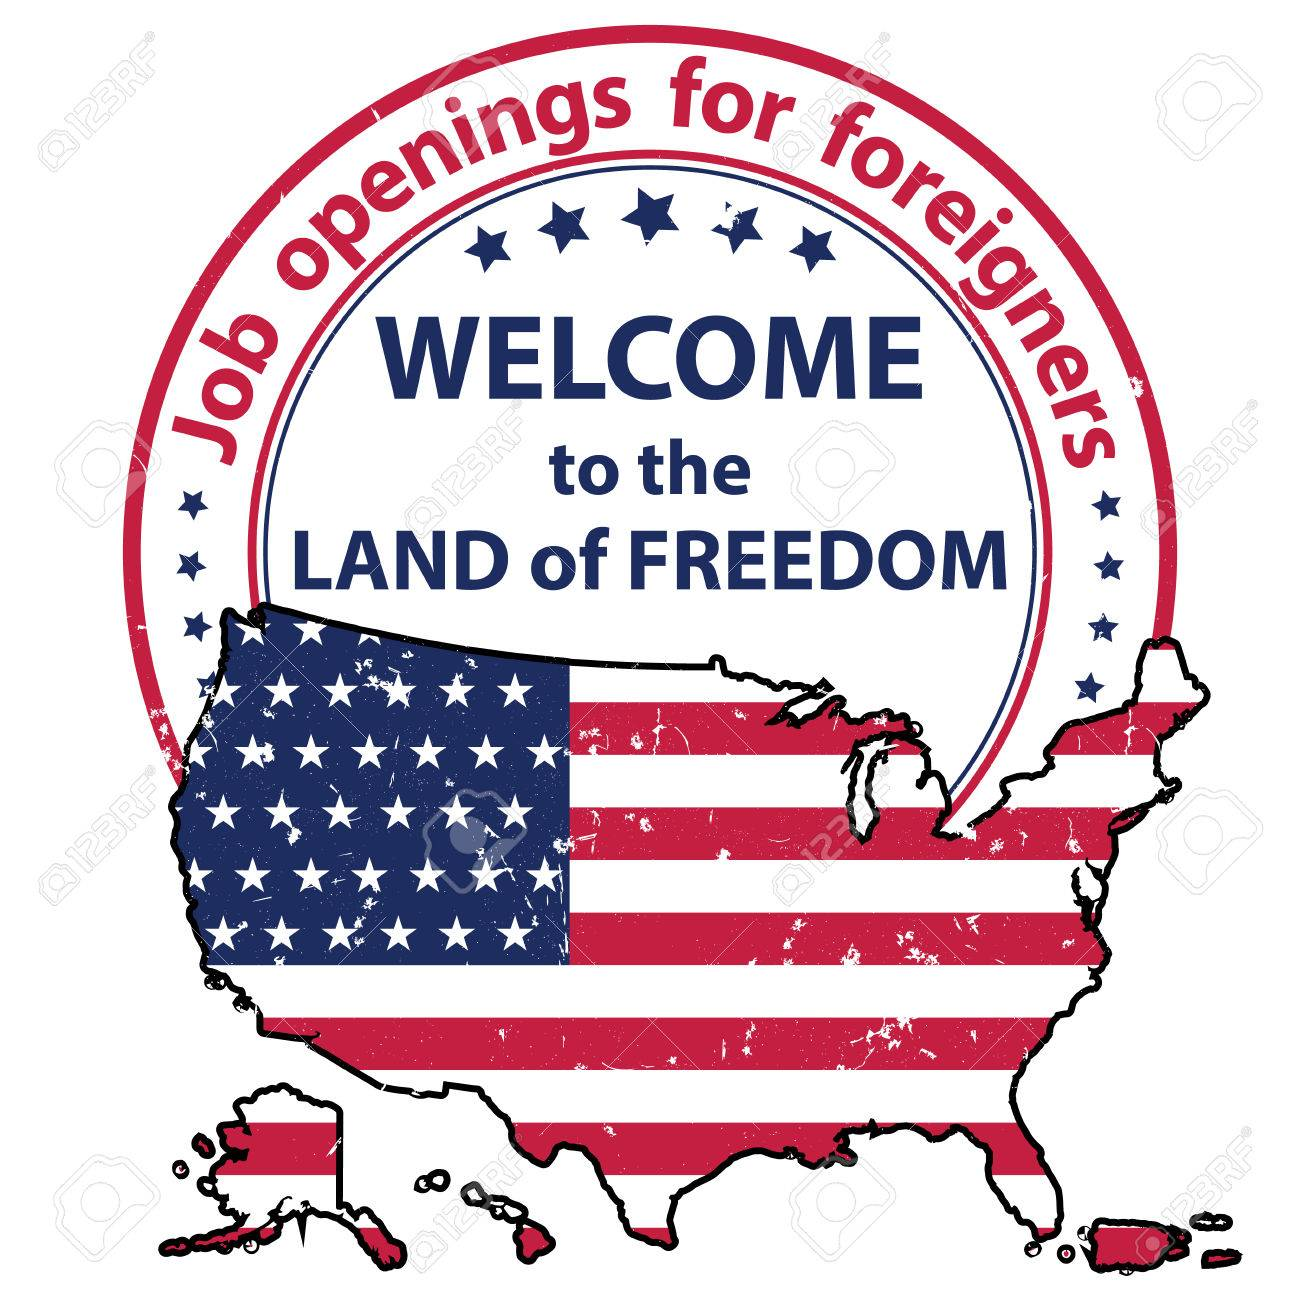 Job Openings For Foreigners Welcome To The Land Of Freedom